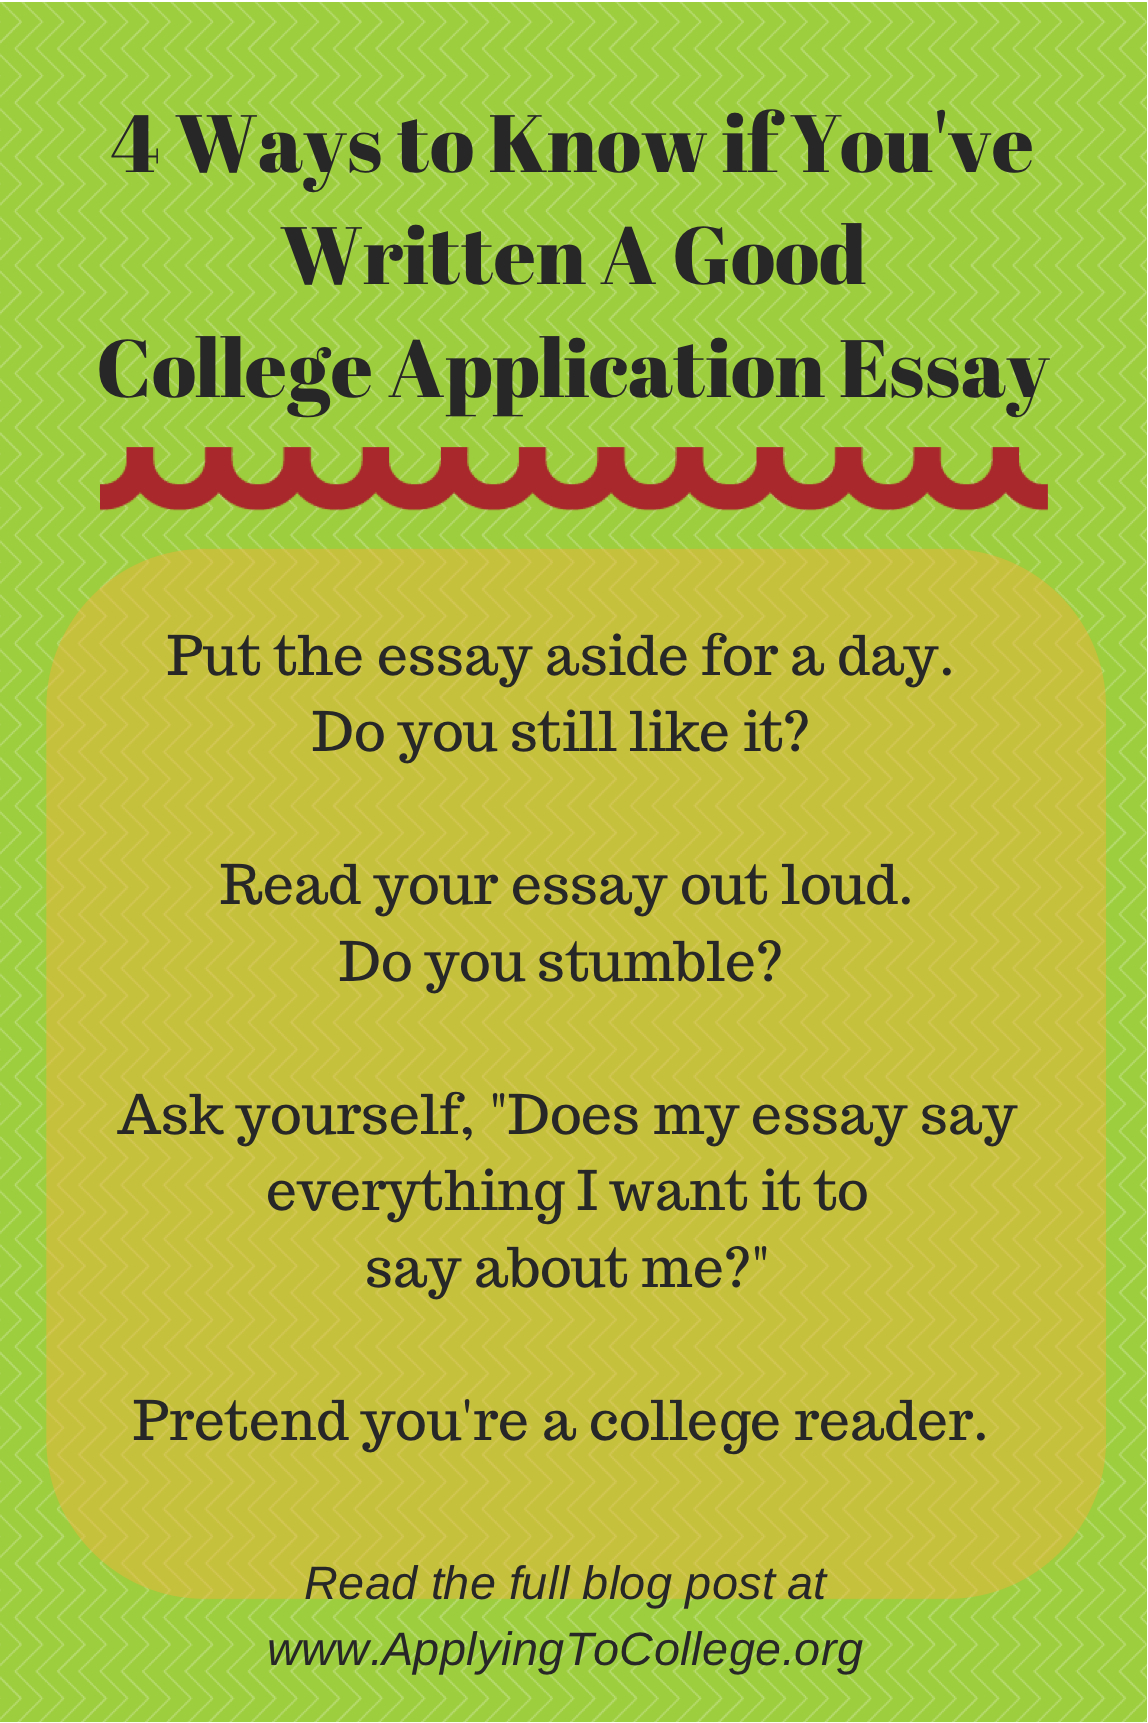 How to write great college application essay